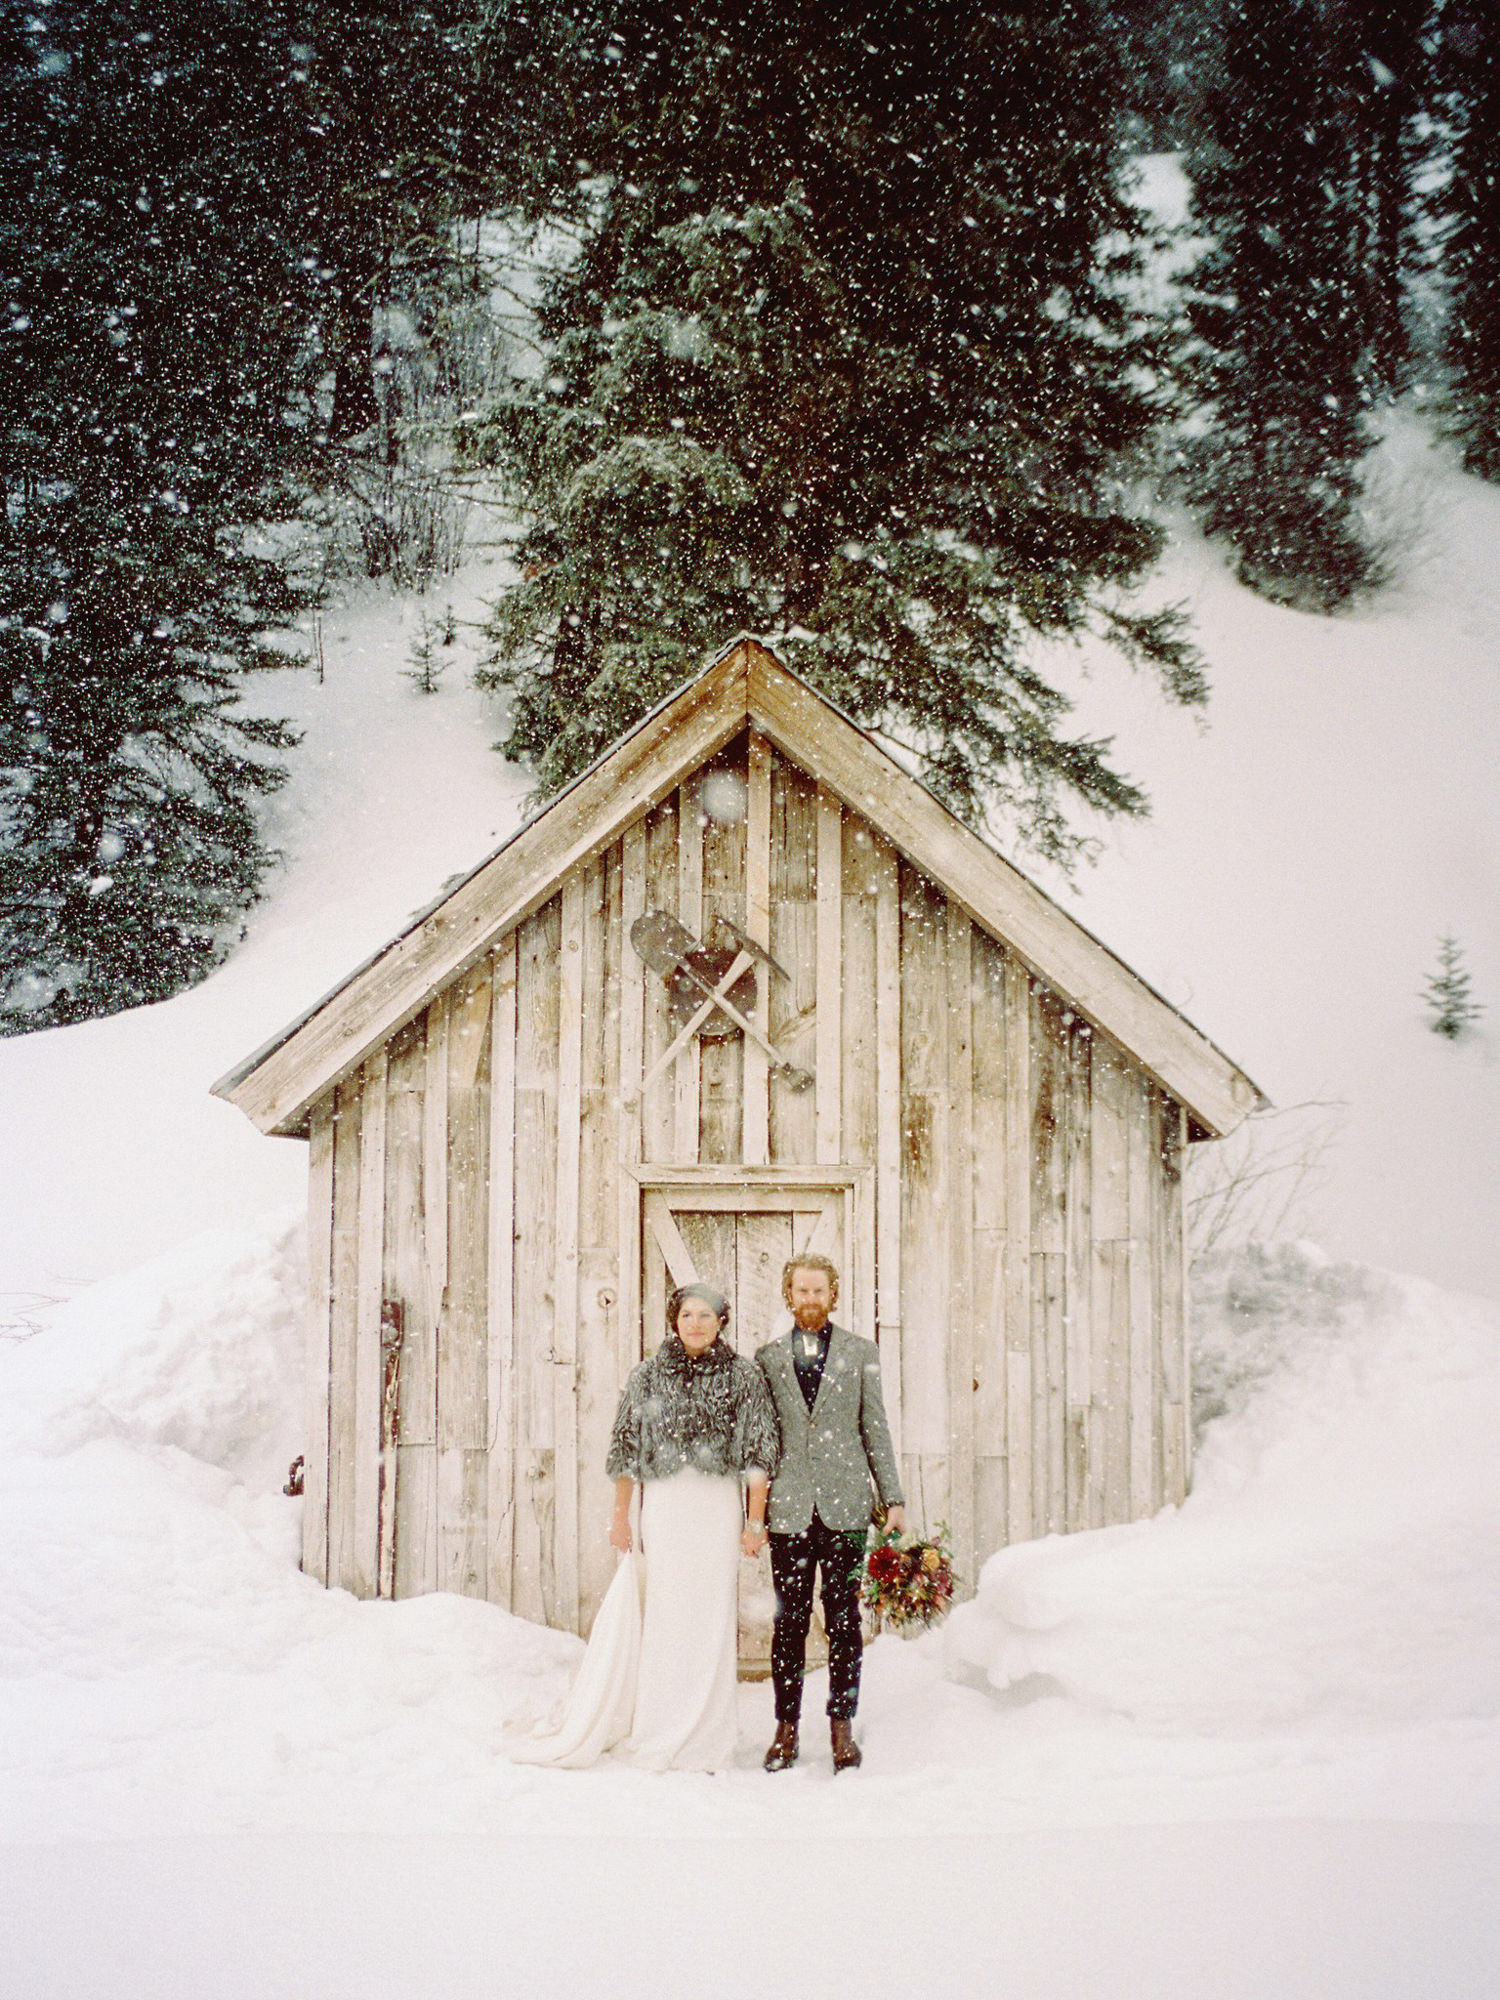 Bride in faux fur coat and groom in grey suit winter portrait in the snow, photo by Benj Haisch